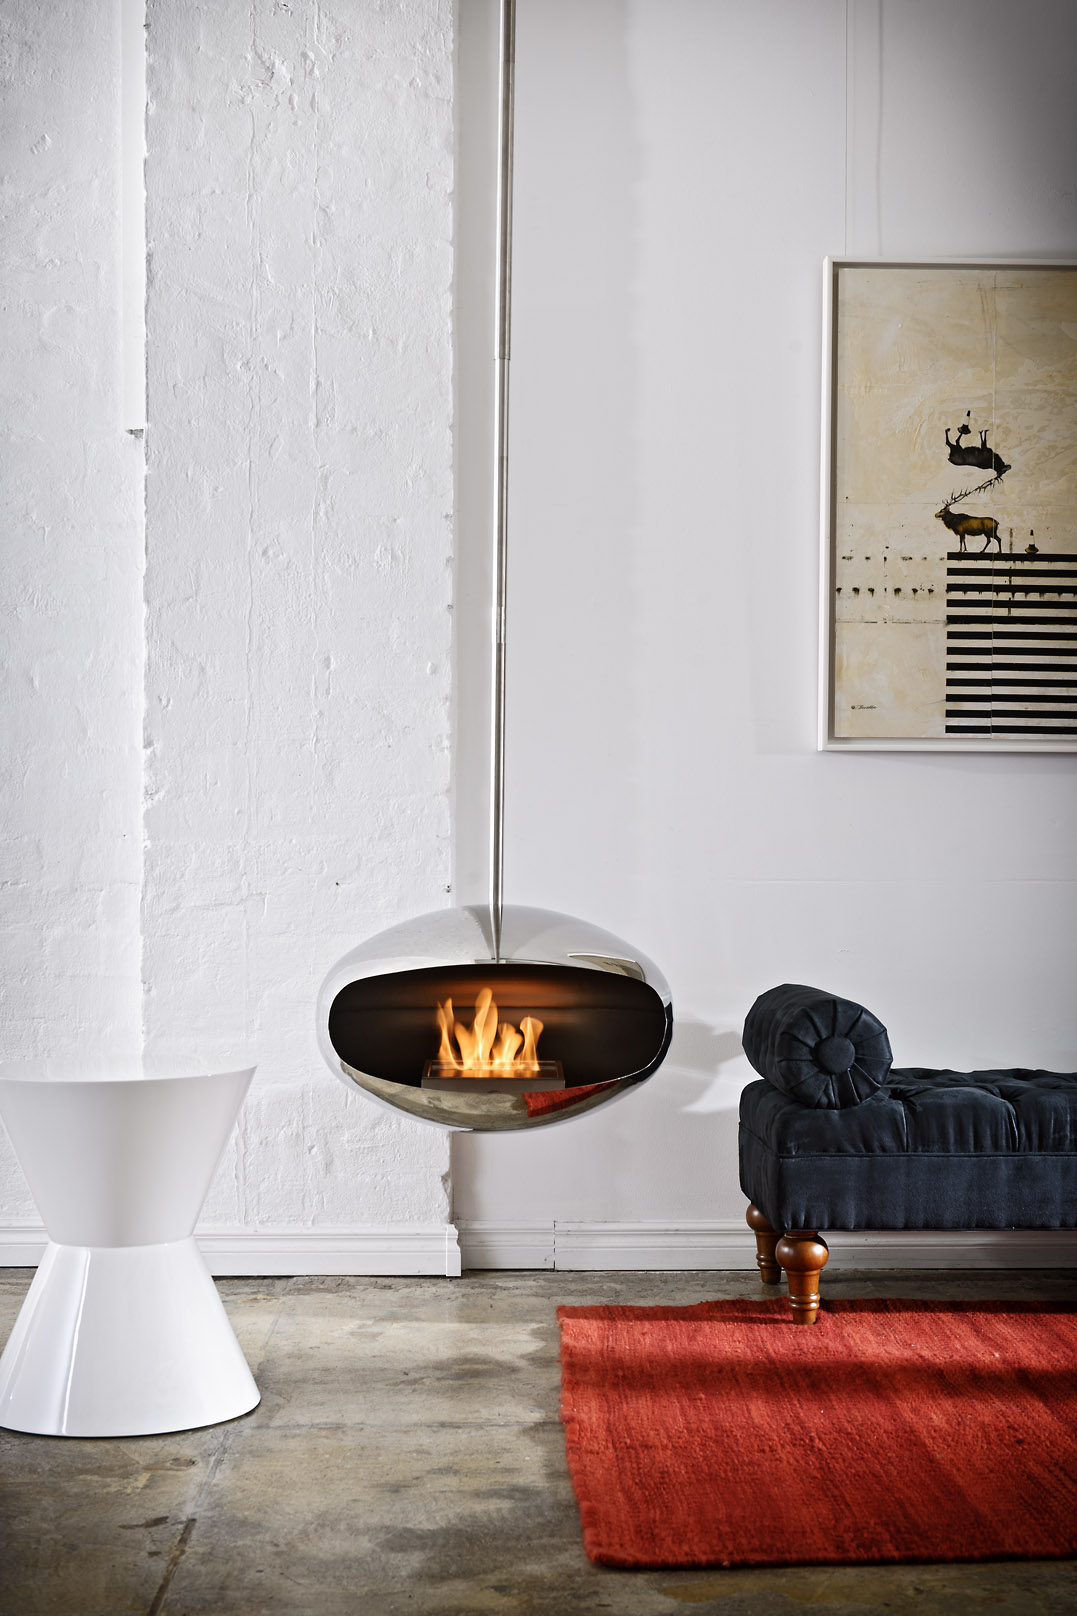 Cocoon Aeris Bioethanol Fireplace Cape Town Beauty Fires